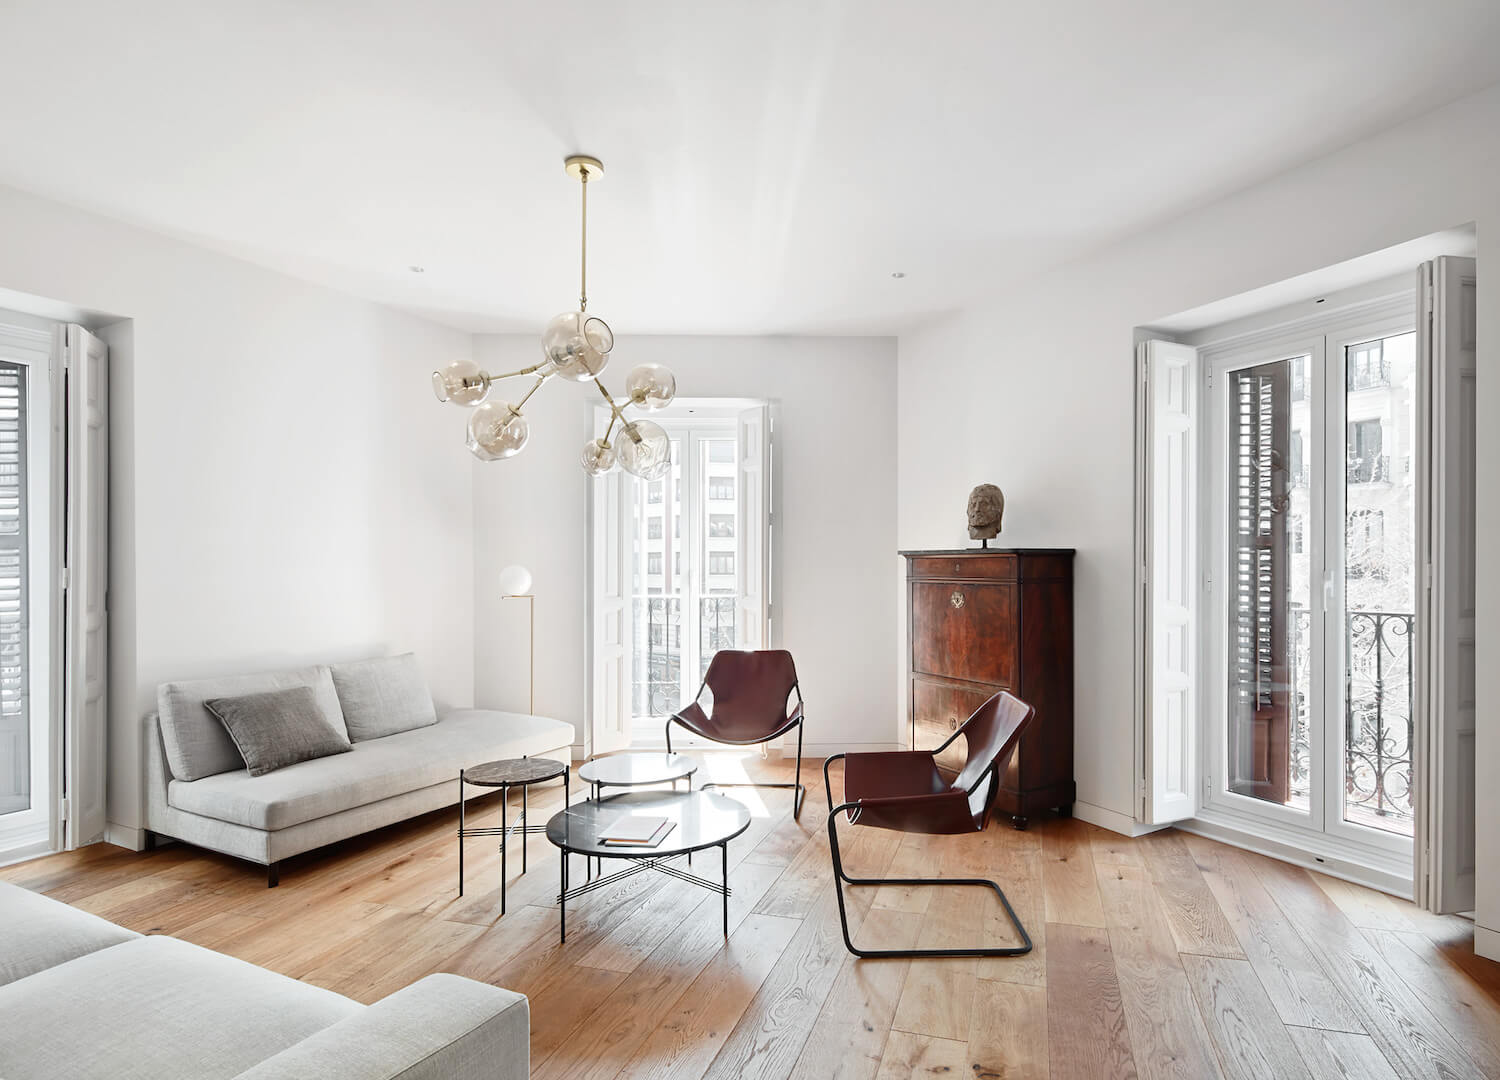 Apartment designed by Lucas and Hernández Gil